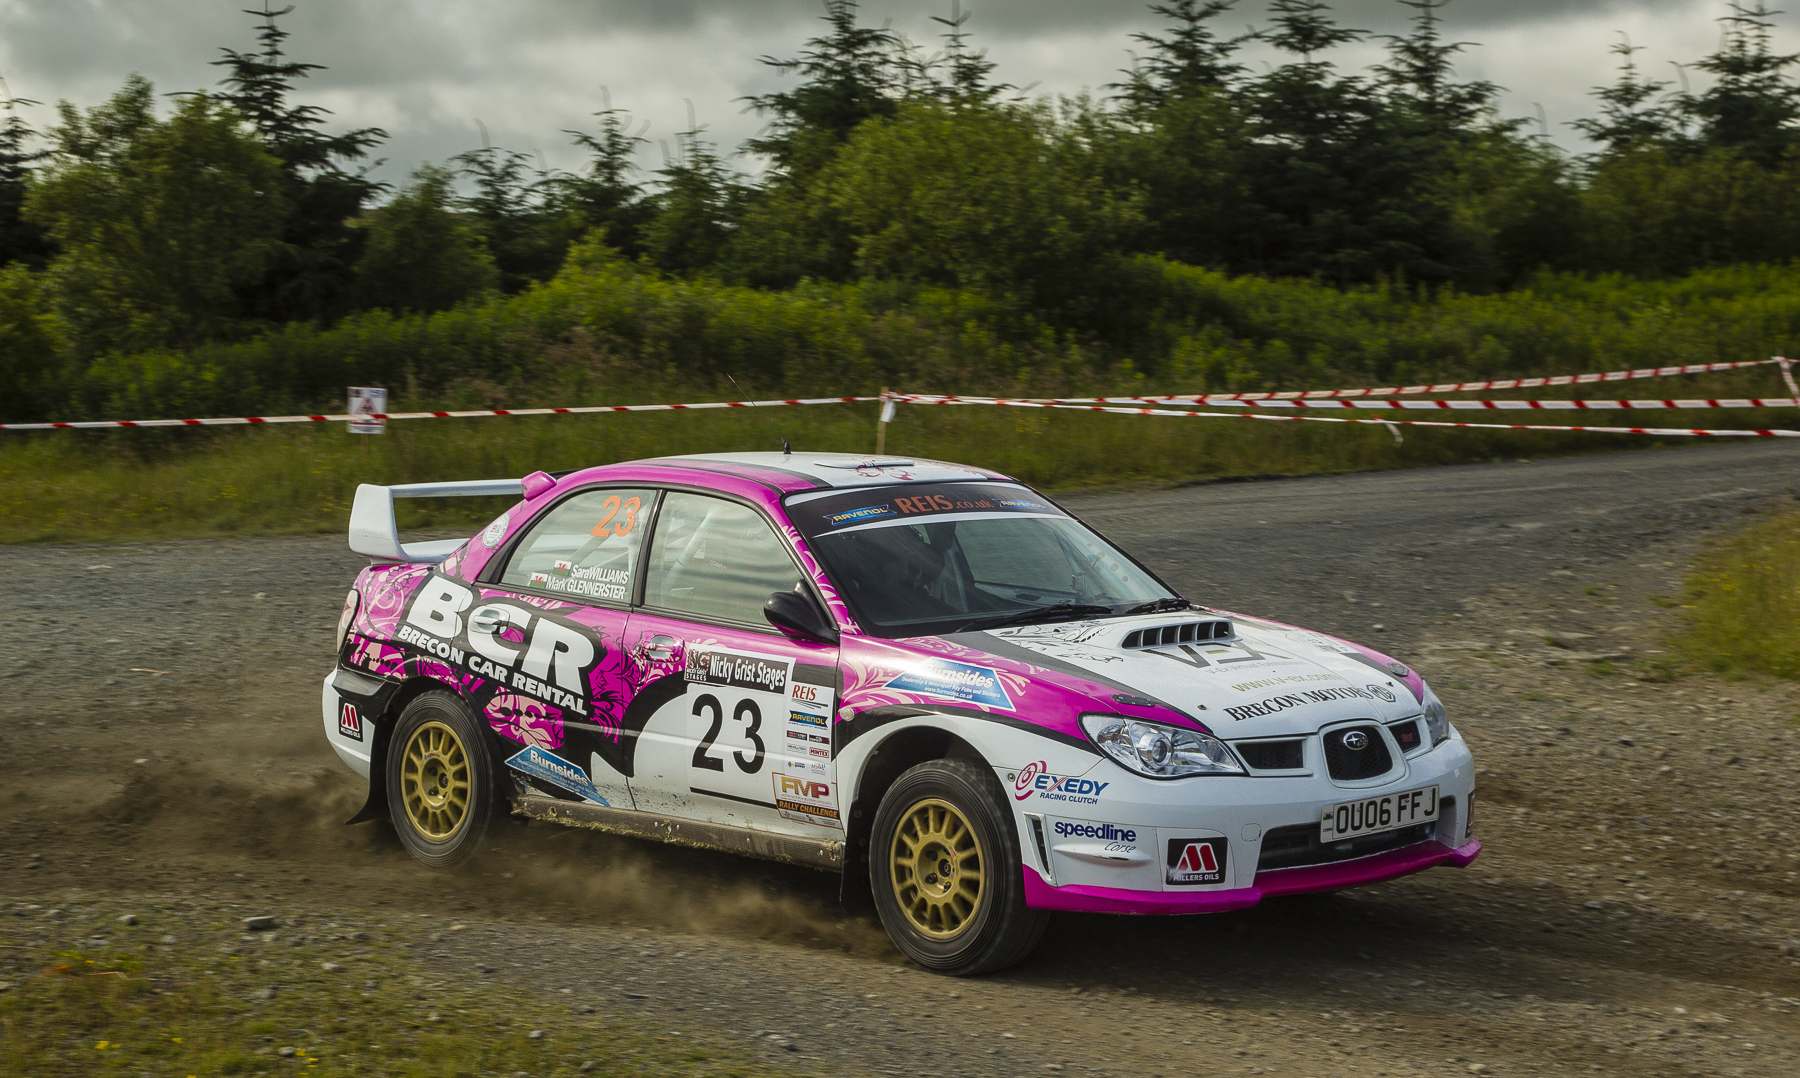 Sara Williams keeps the intensity at the Nicky Grist Stages 2015